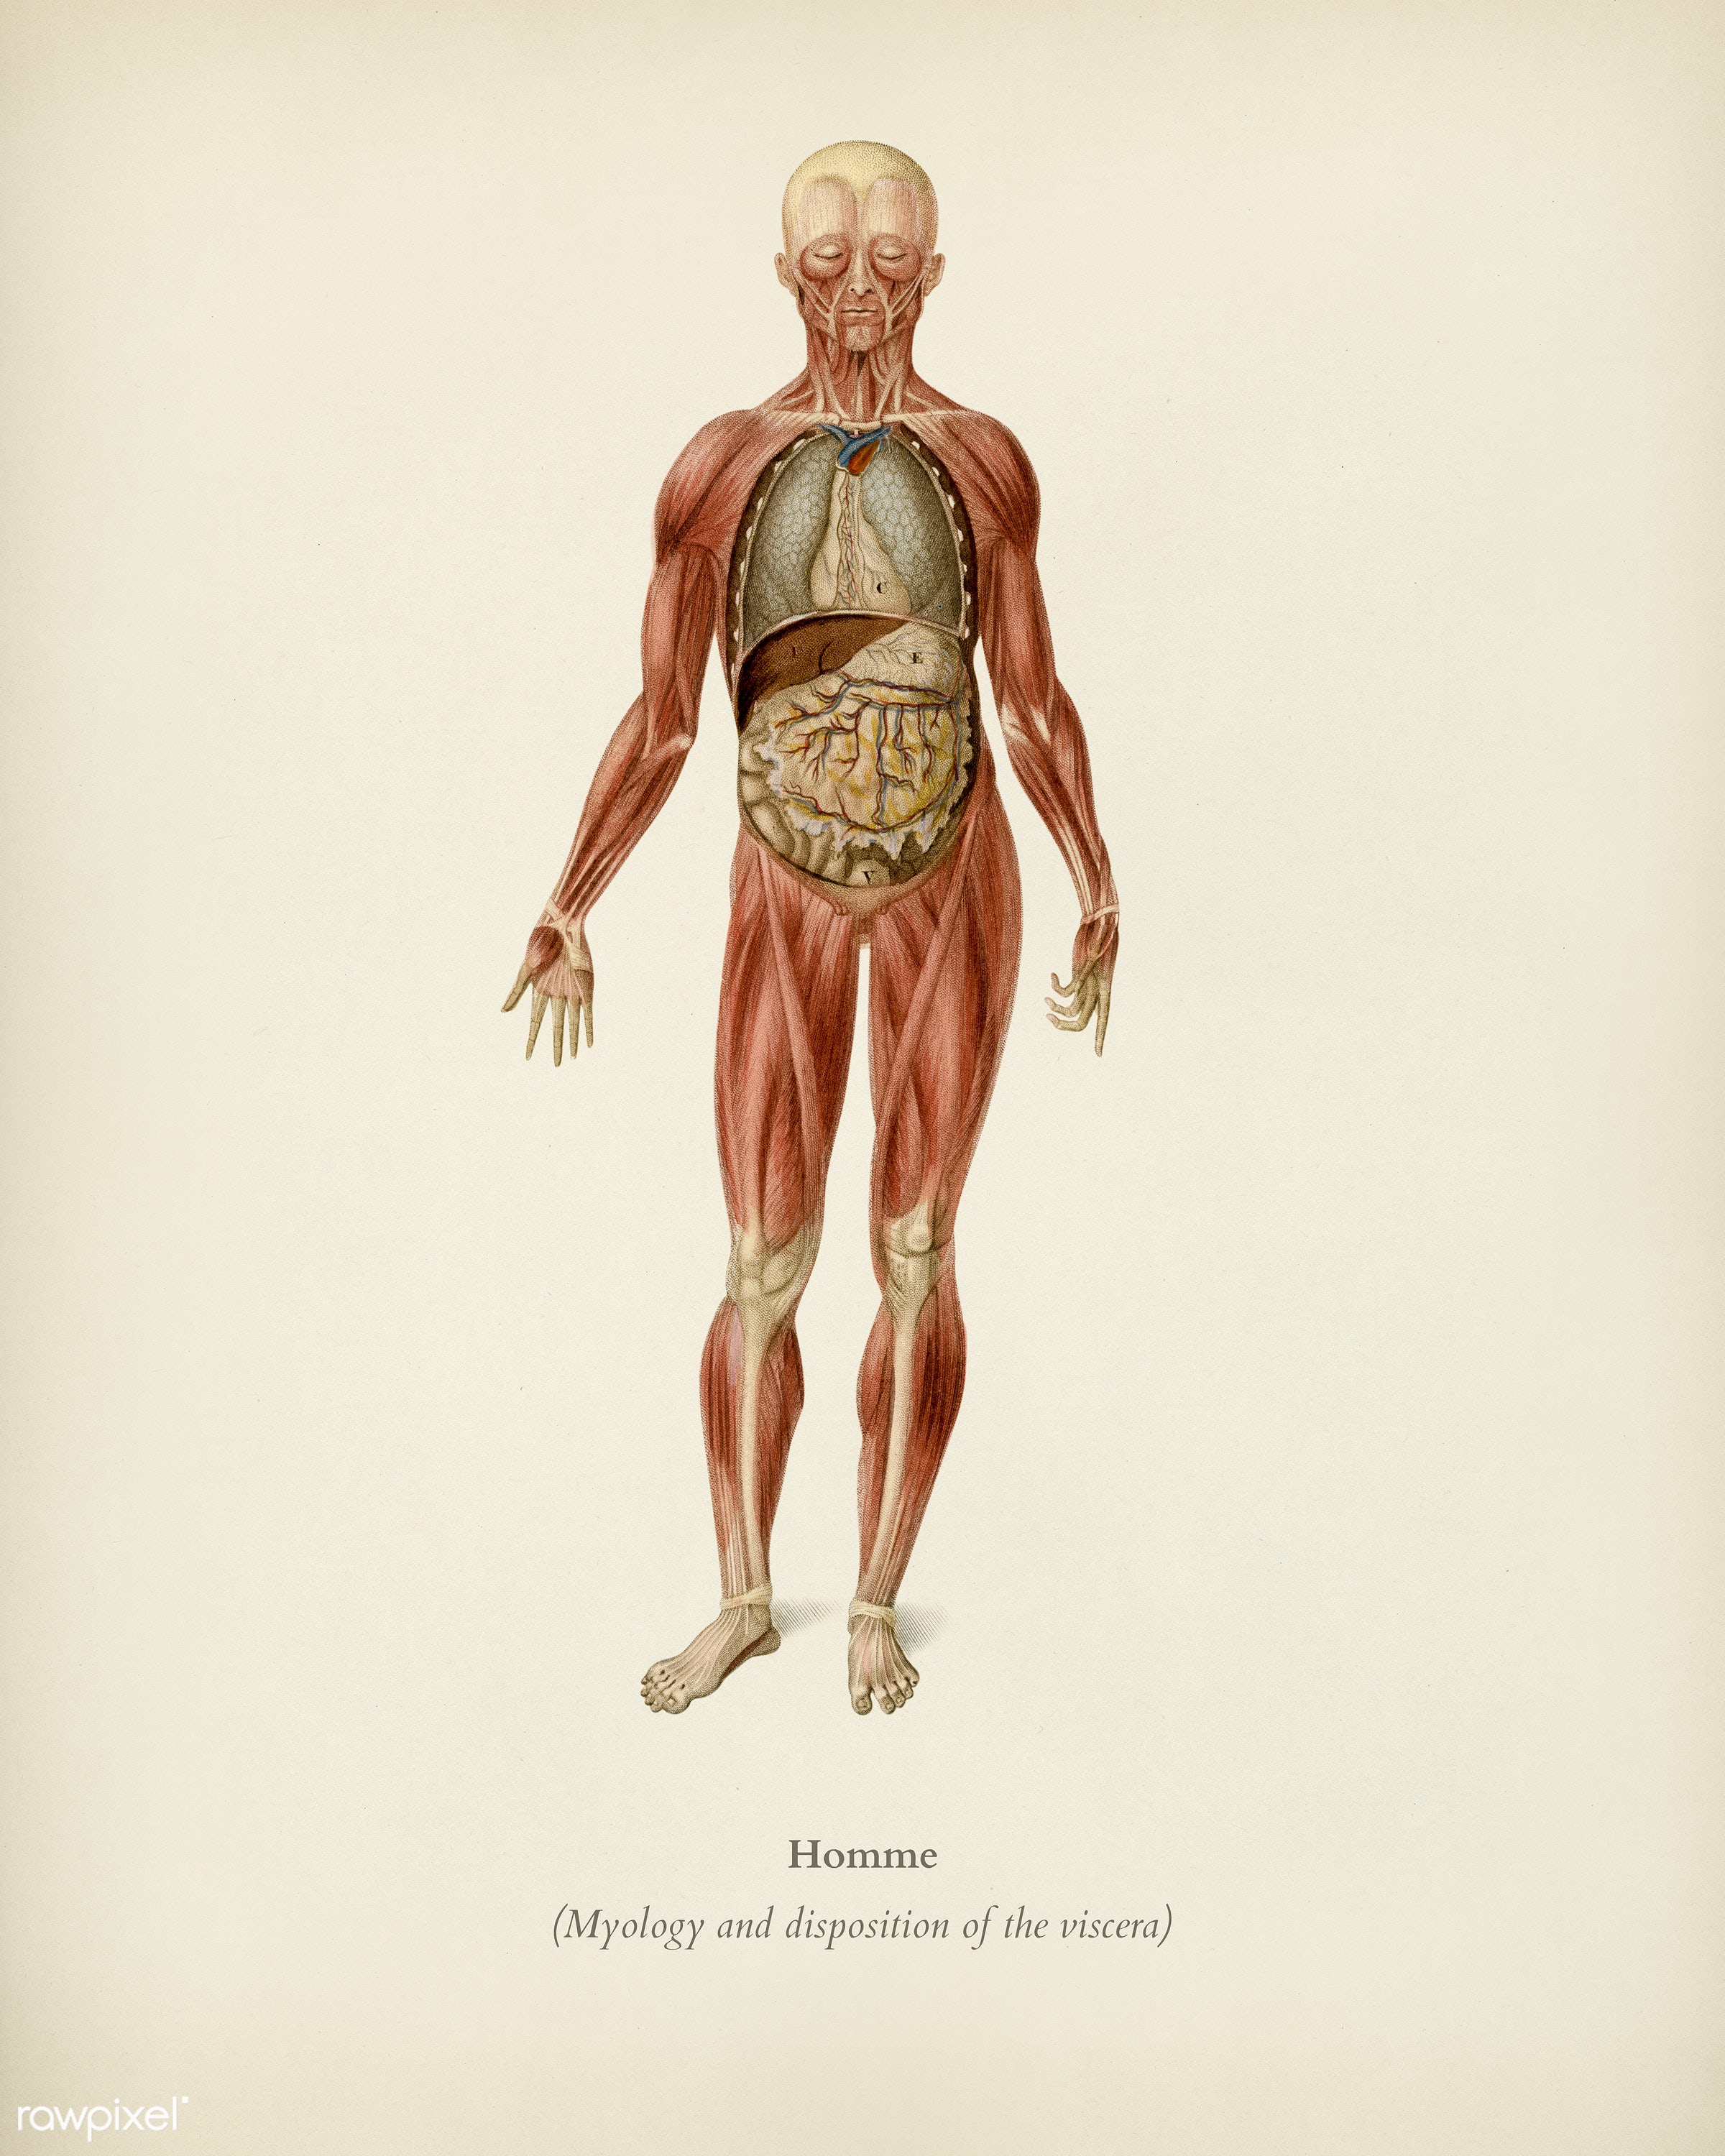 Myology and disposition of the viscera illustrated by Charles Dessalines D' Orbigny (1806-1876). Digitally enhanced from...